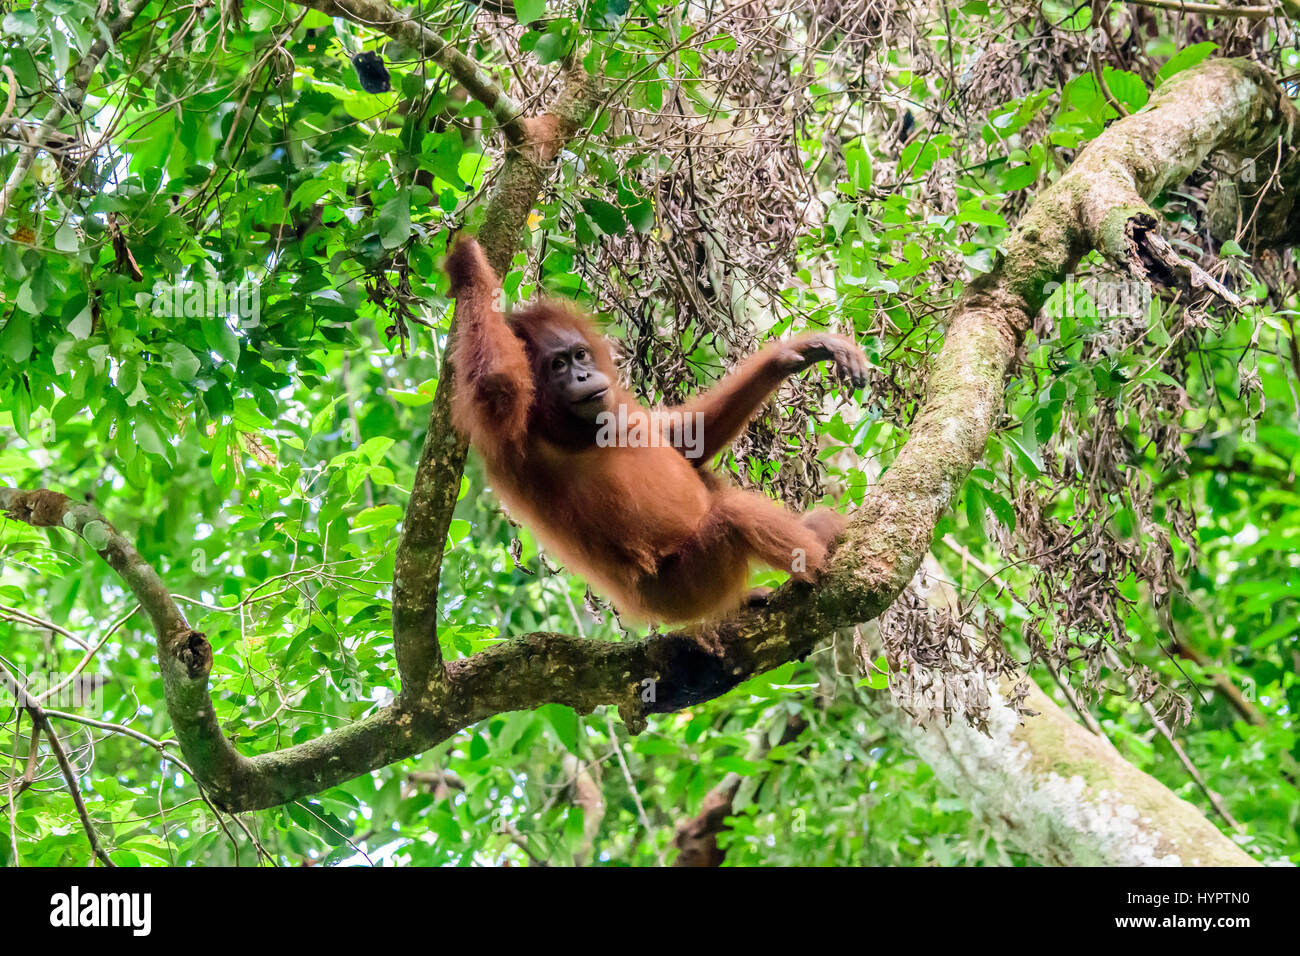 Orangutan chilling out in the rainforest - Stock Image